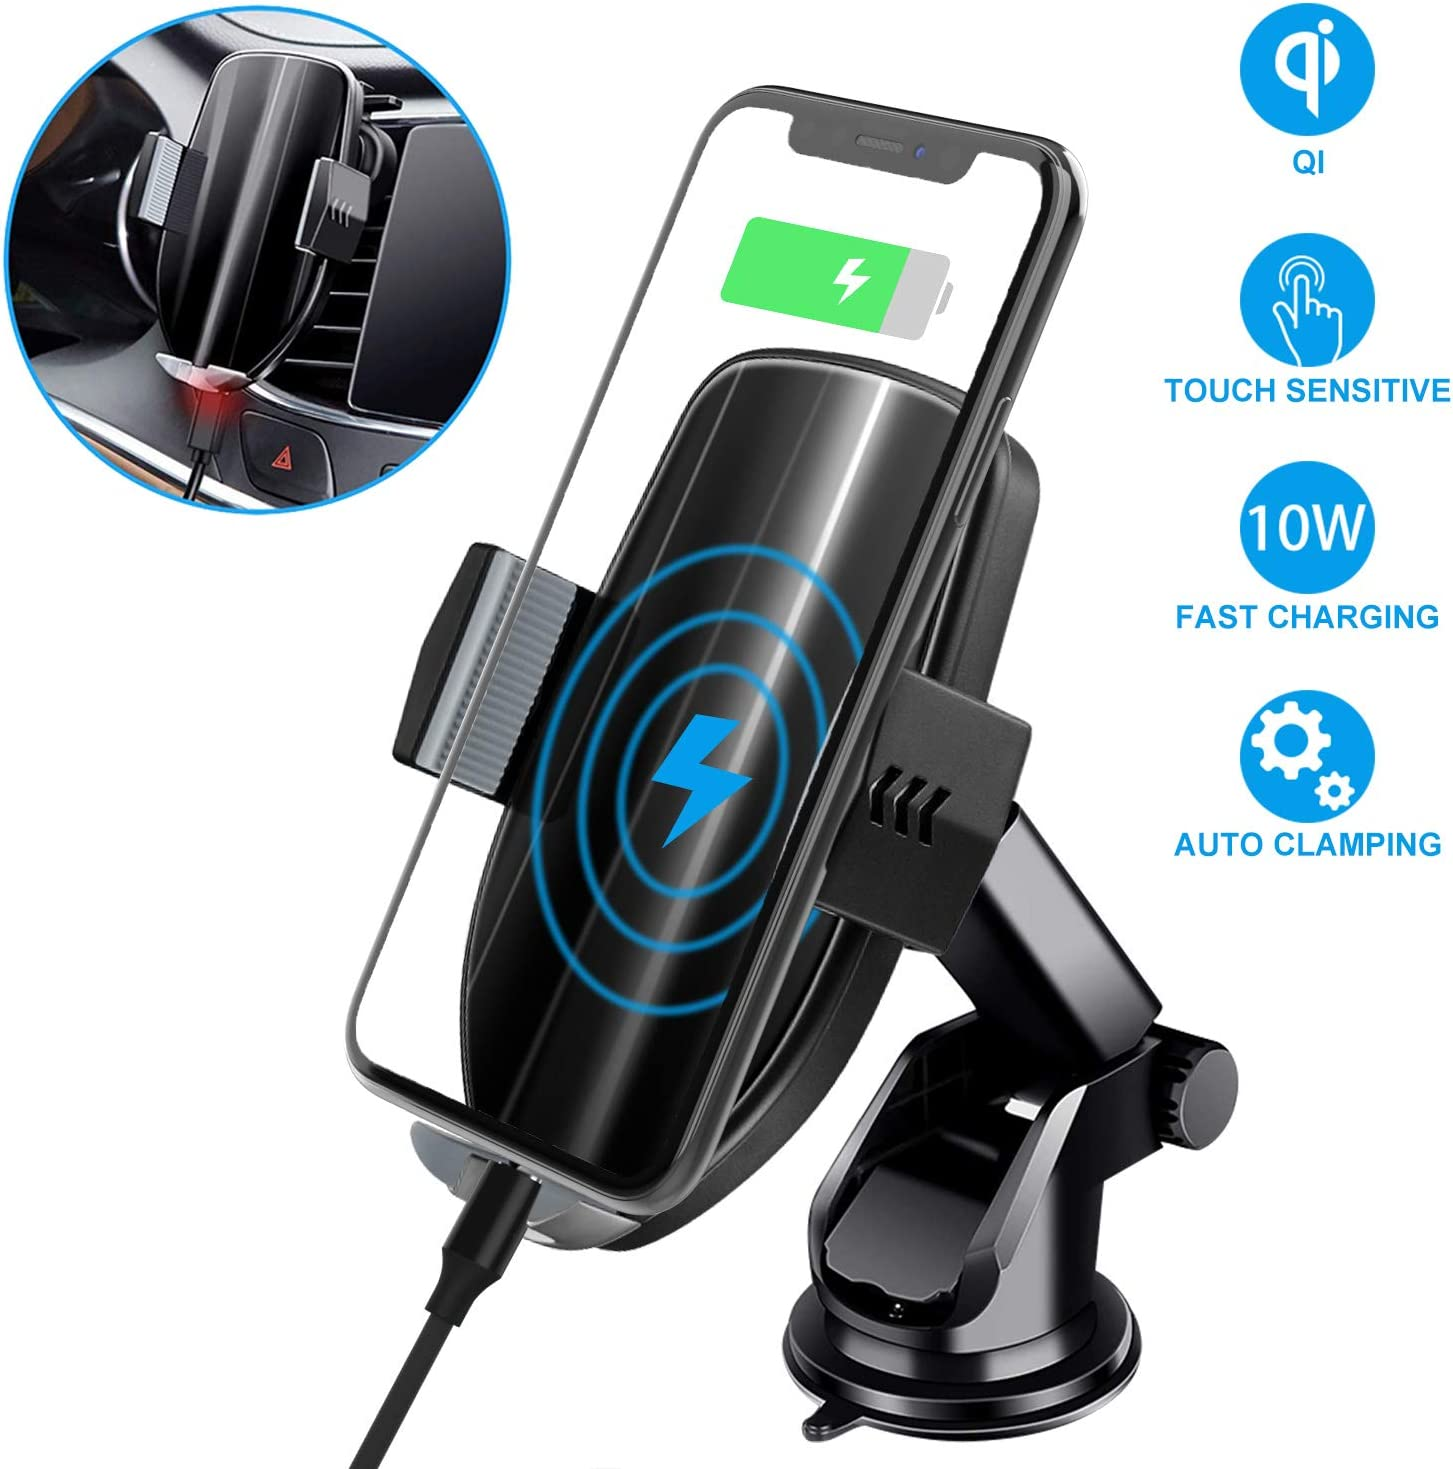 Silver Qi Wireless Car Charger,Auto Clamping Car Mount,10W//7.5W Fast Charging,Air Vent Dashboard Phone Holder Compatible with iPhone Xs MAX//XS//XR//X//8//8+ Samsung S10//S10+//S9//S9+//S8//S8+